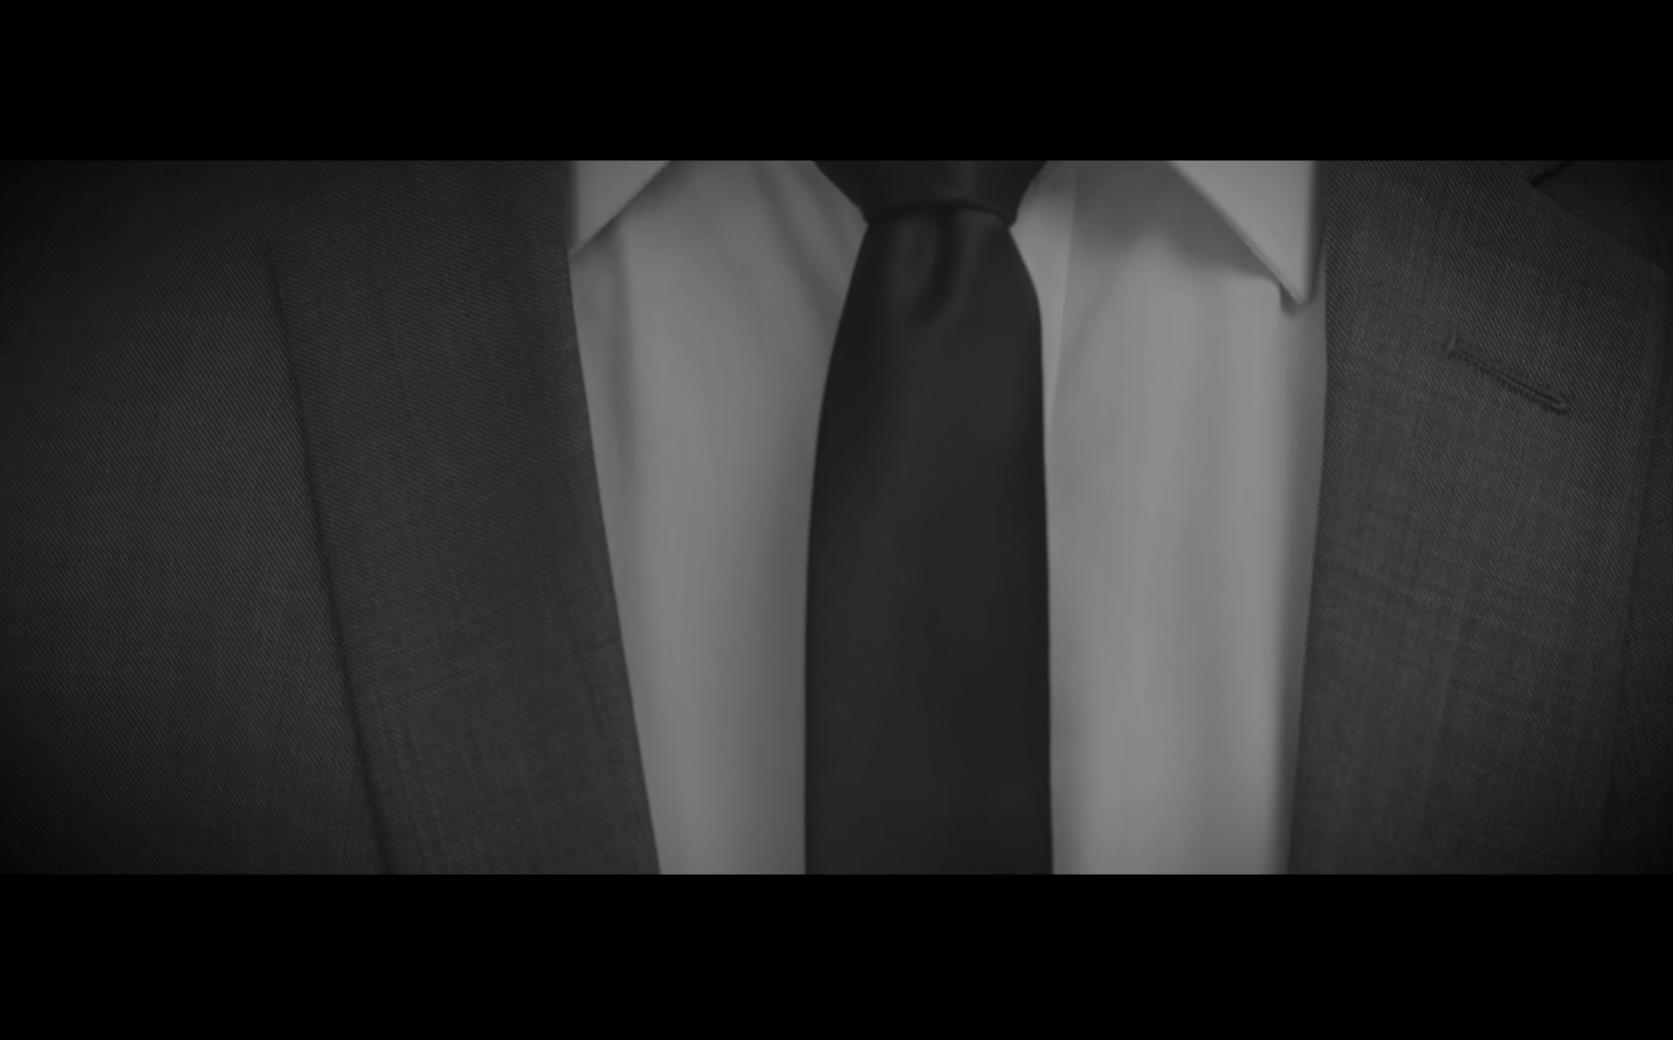 2018-05-10 00_26_59-Rundle Tailoring Hire Suit - Brand Video on Vimeo.png